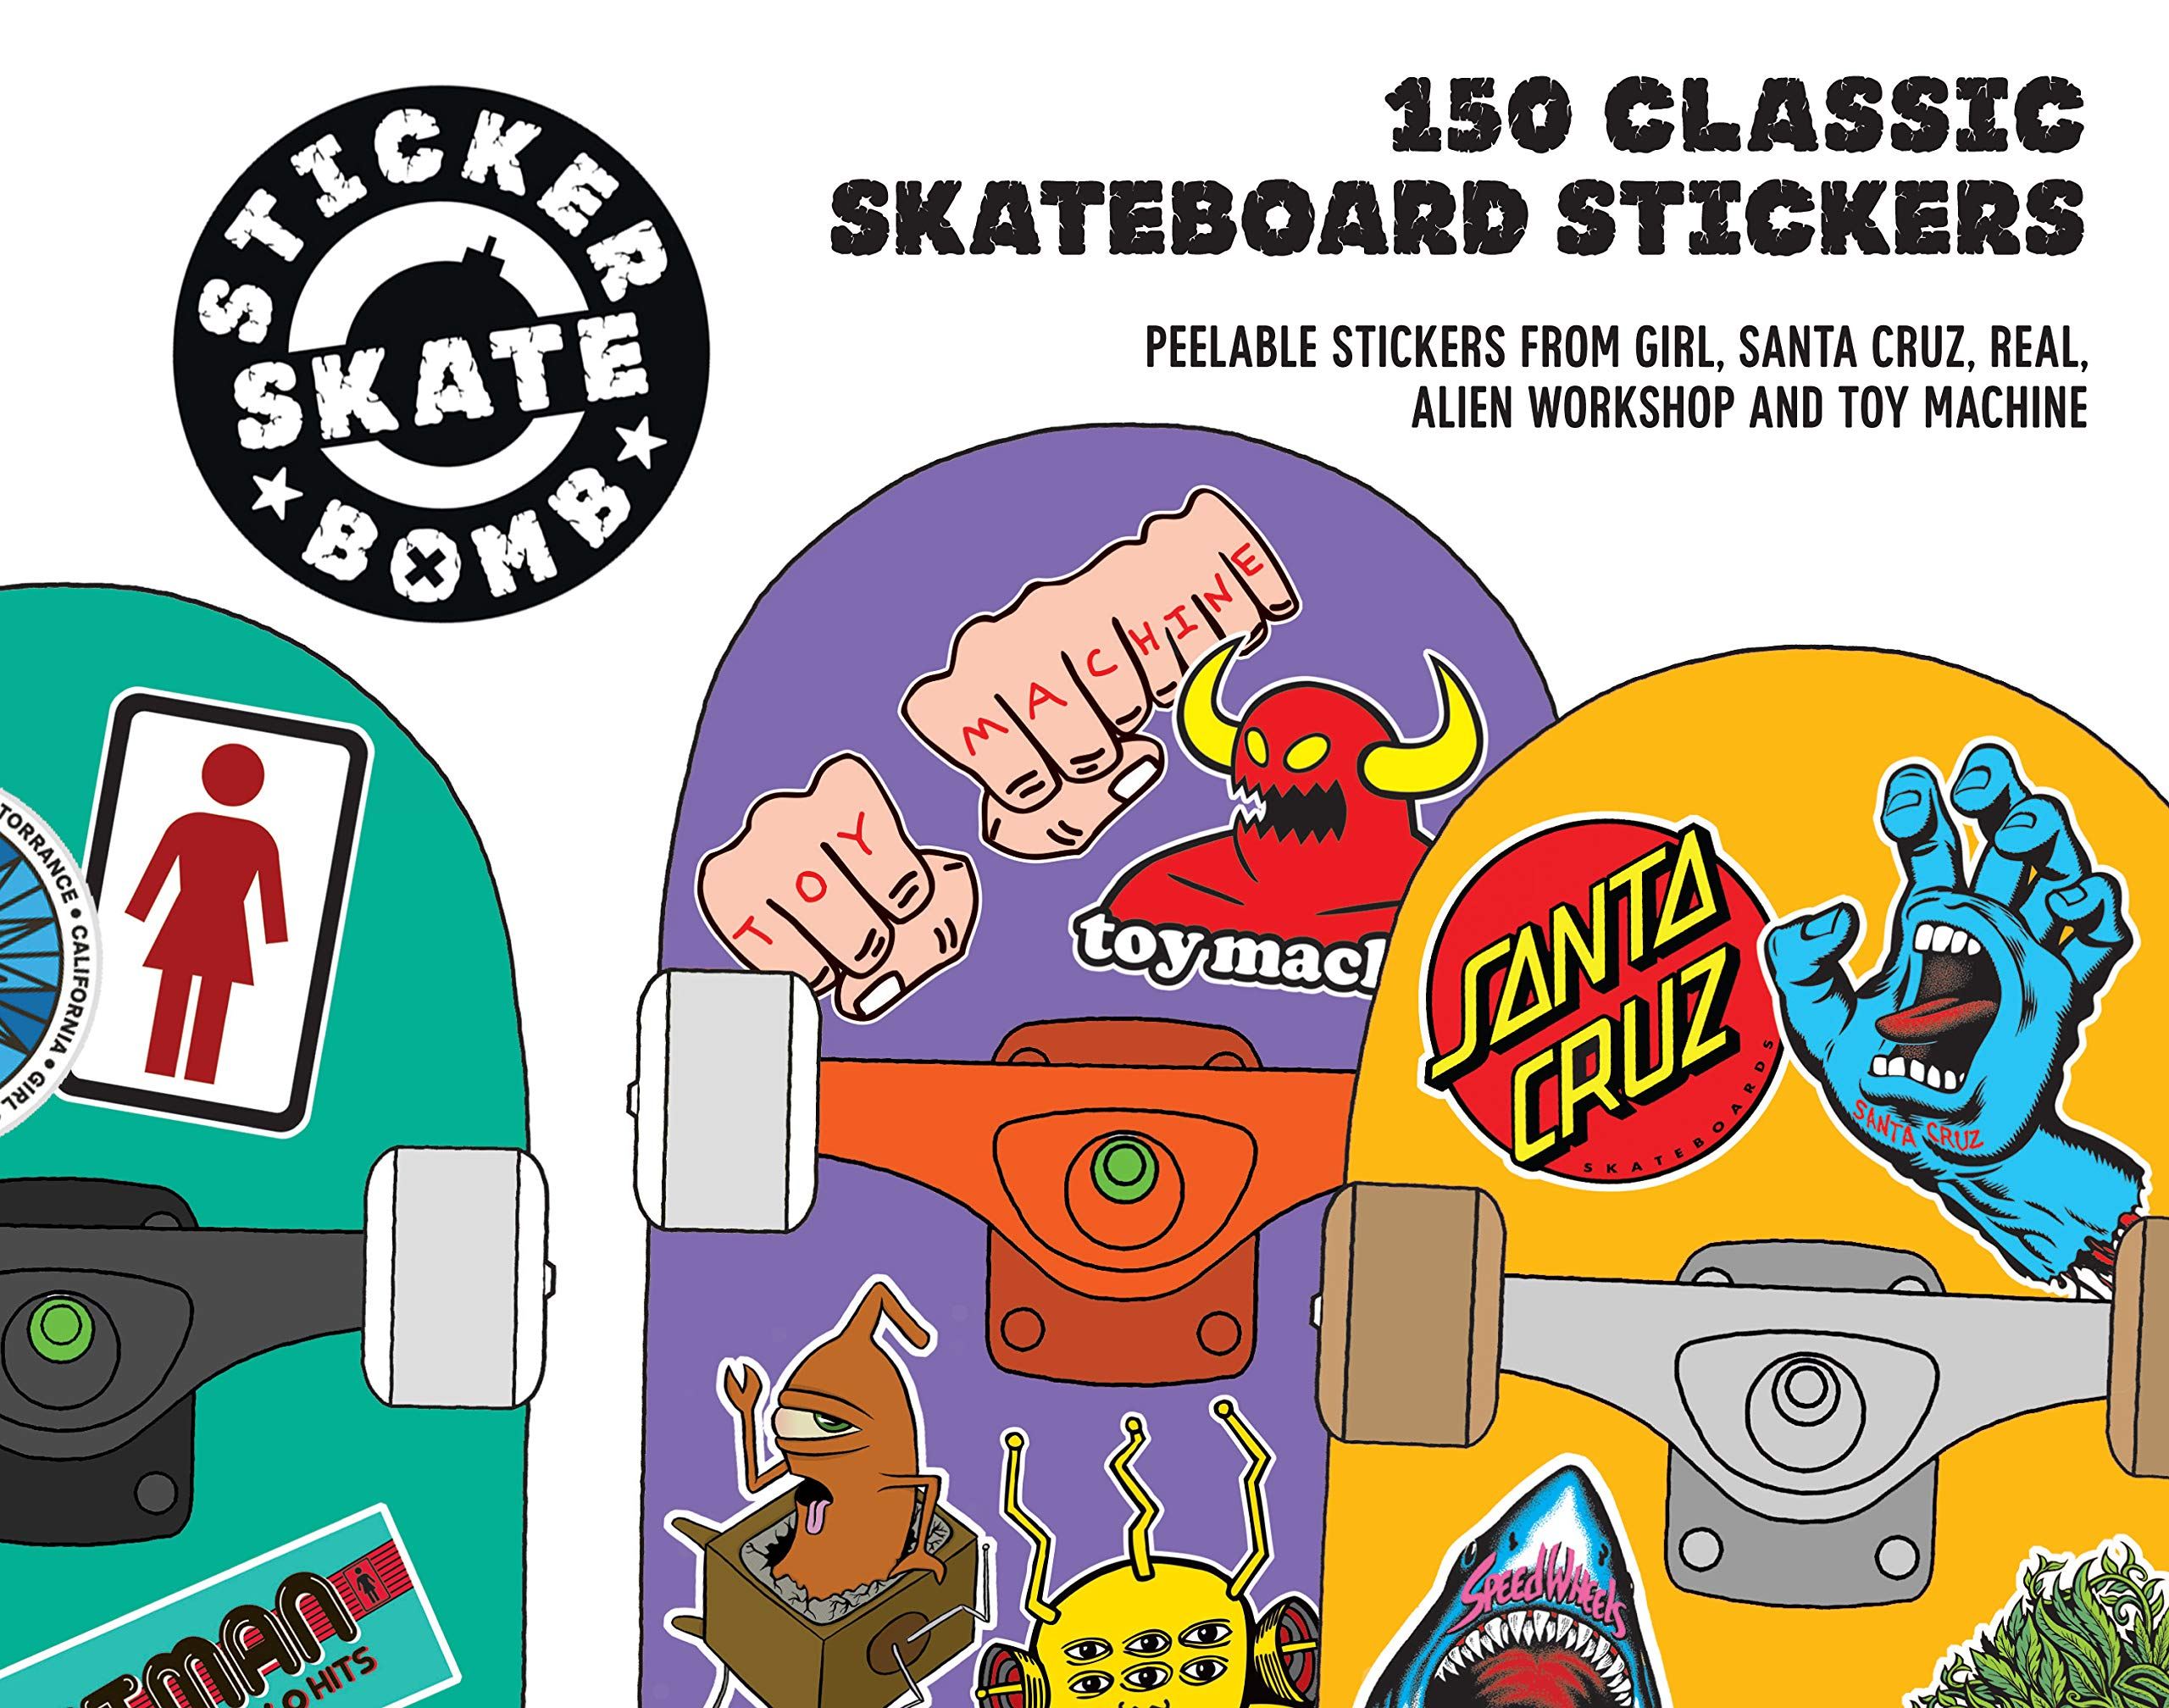 Stickerbomb skateboard 150 classic skateboard stickers studio rarekwai srk 9781780674124 amazon com books